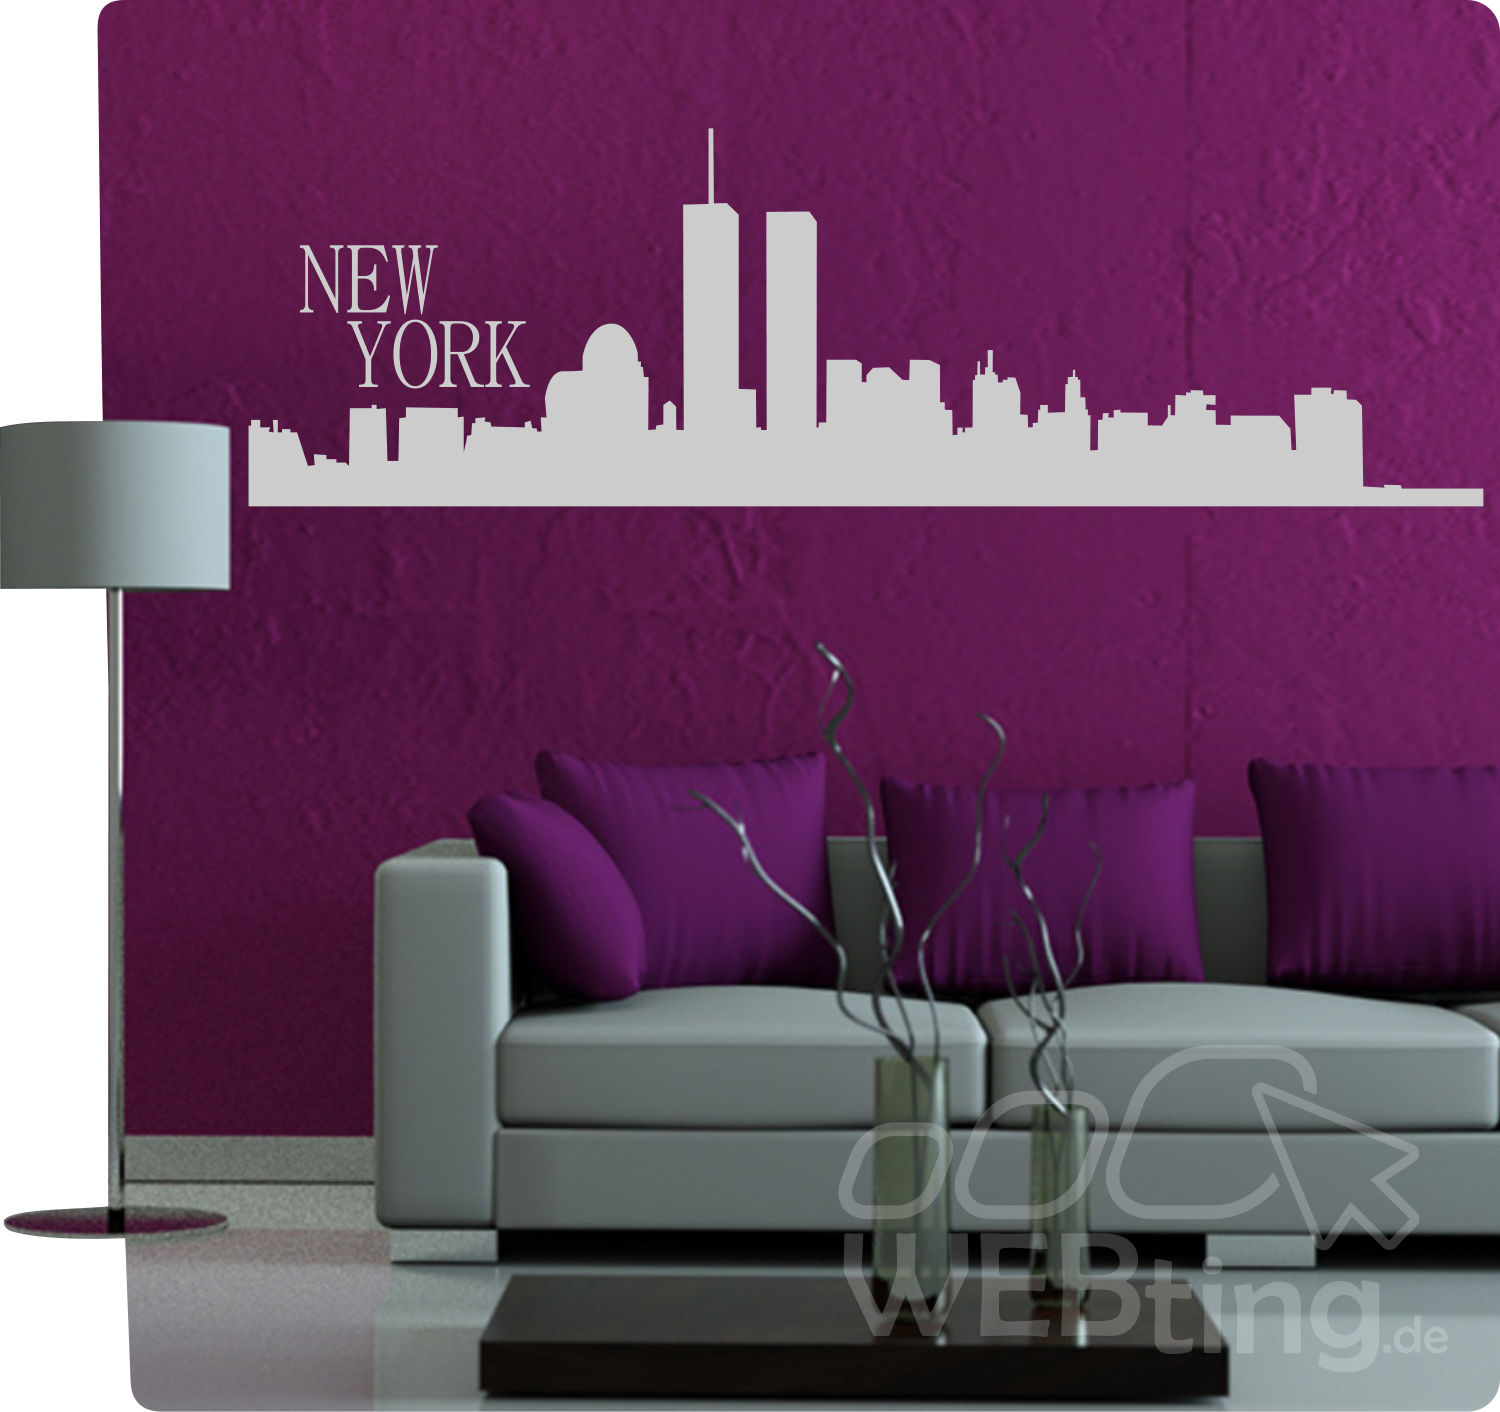 wandtattoo skyline usa reuniecollegenoetsele. Black Bedroom Furniture Sets. Home Design Ideas